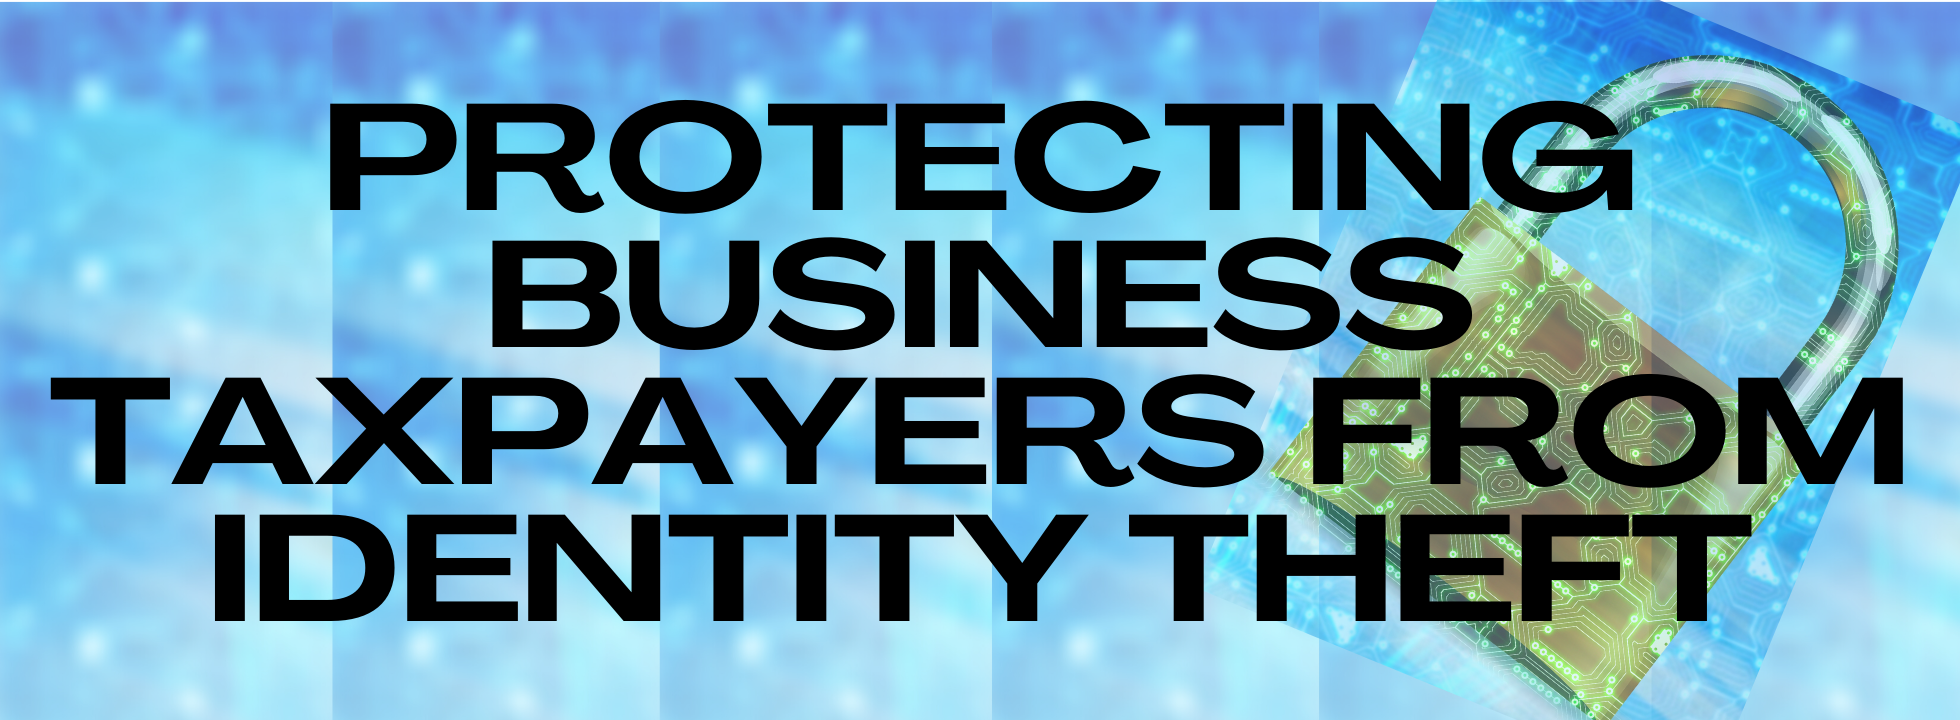 Protecting Business Taxpayers from Identity Theft